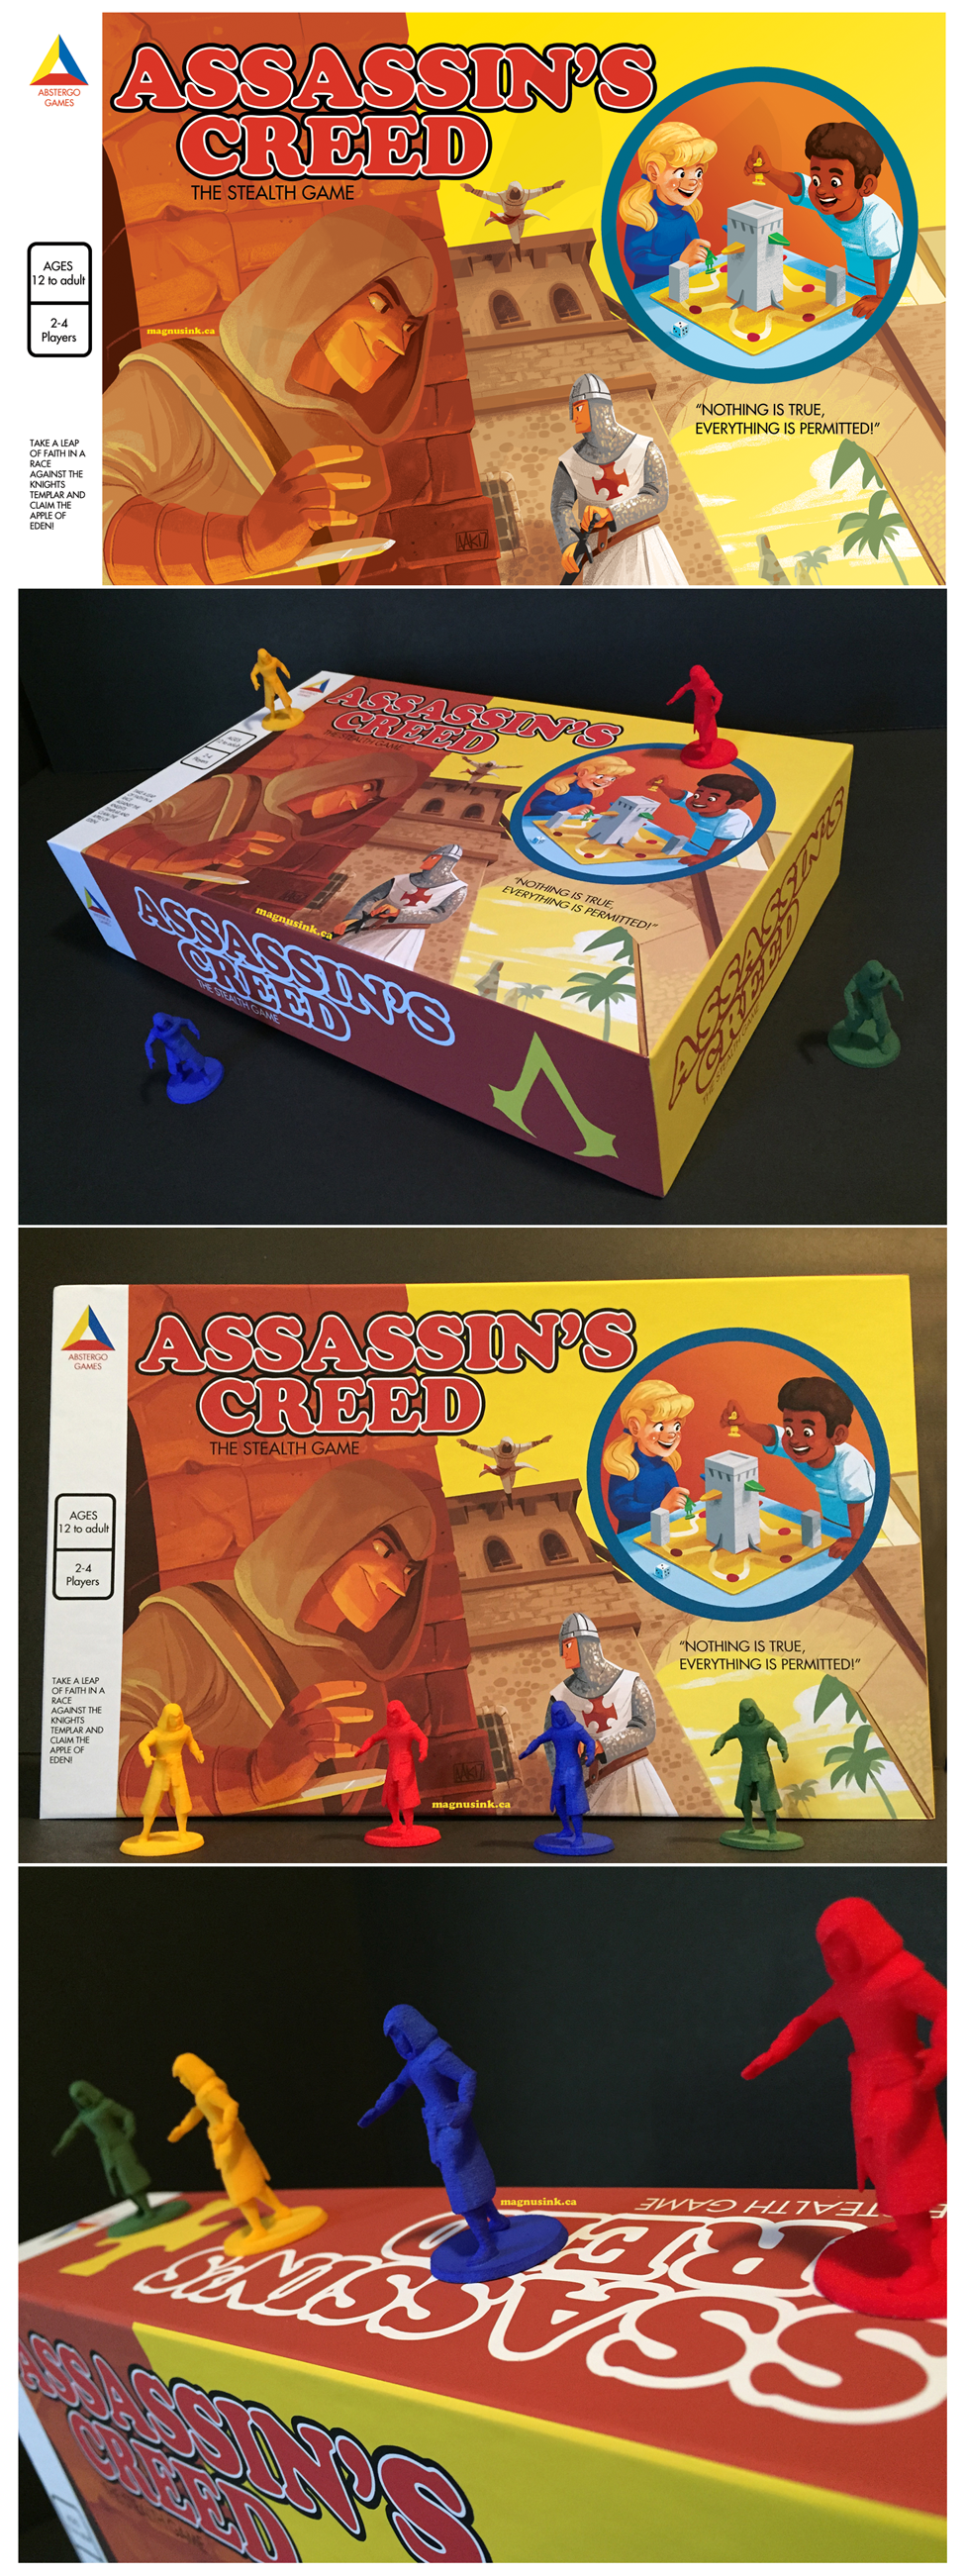 Assassin's Creed mock boardgame